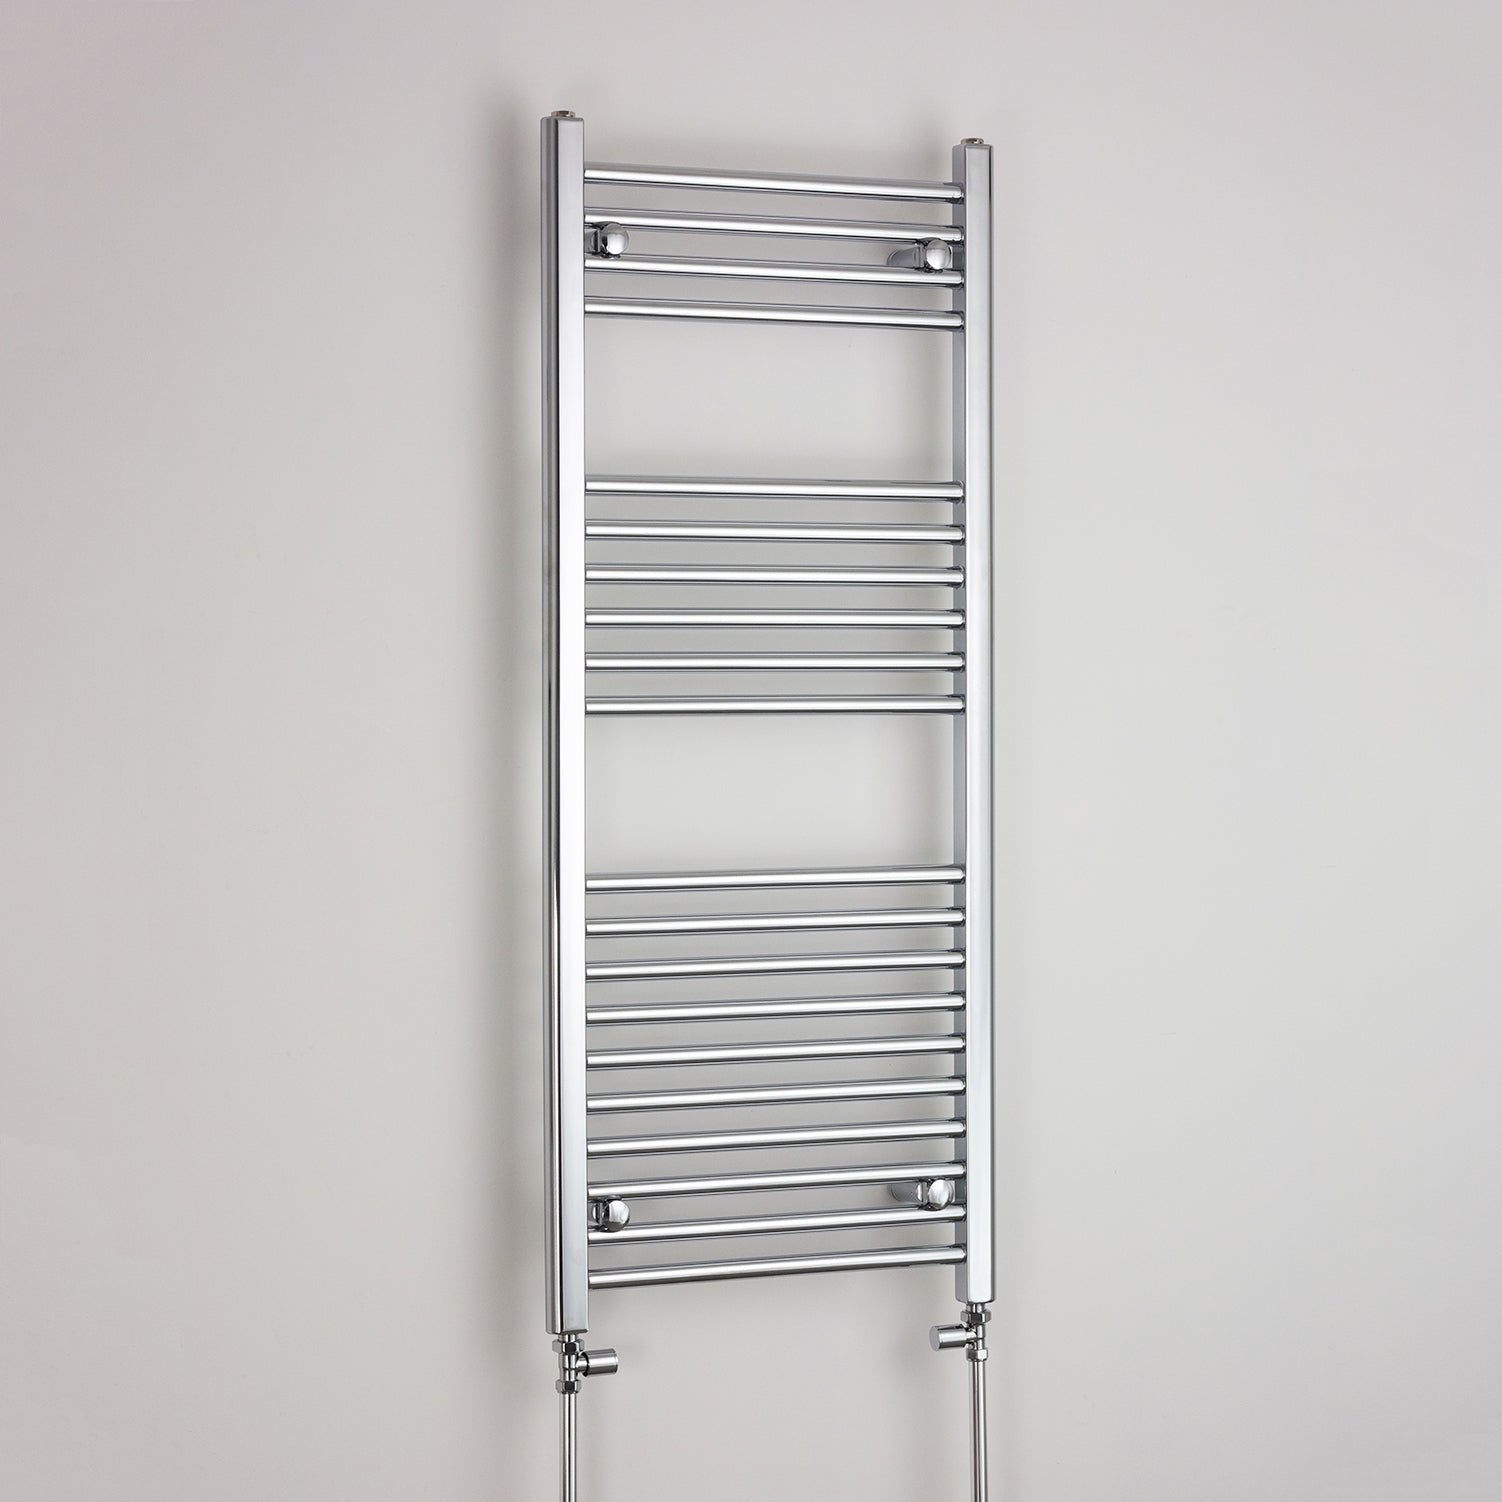 400mm Wide 1200mm High Flat Chrome Heated Towel Rail Radiator HTR,With Straight Valve